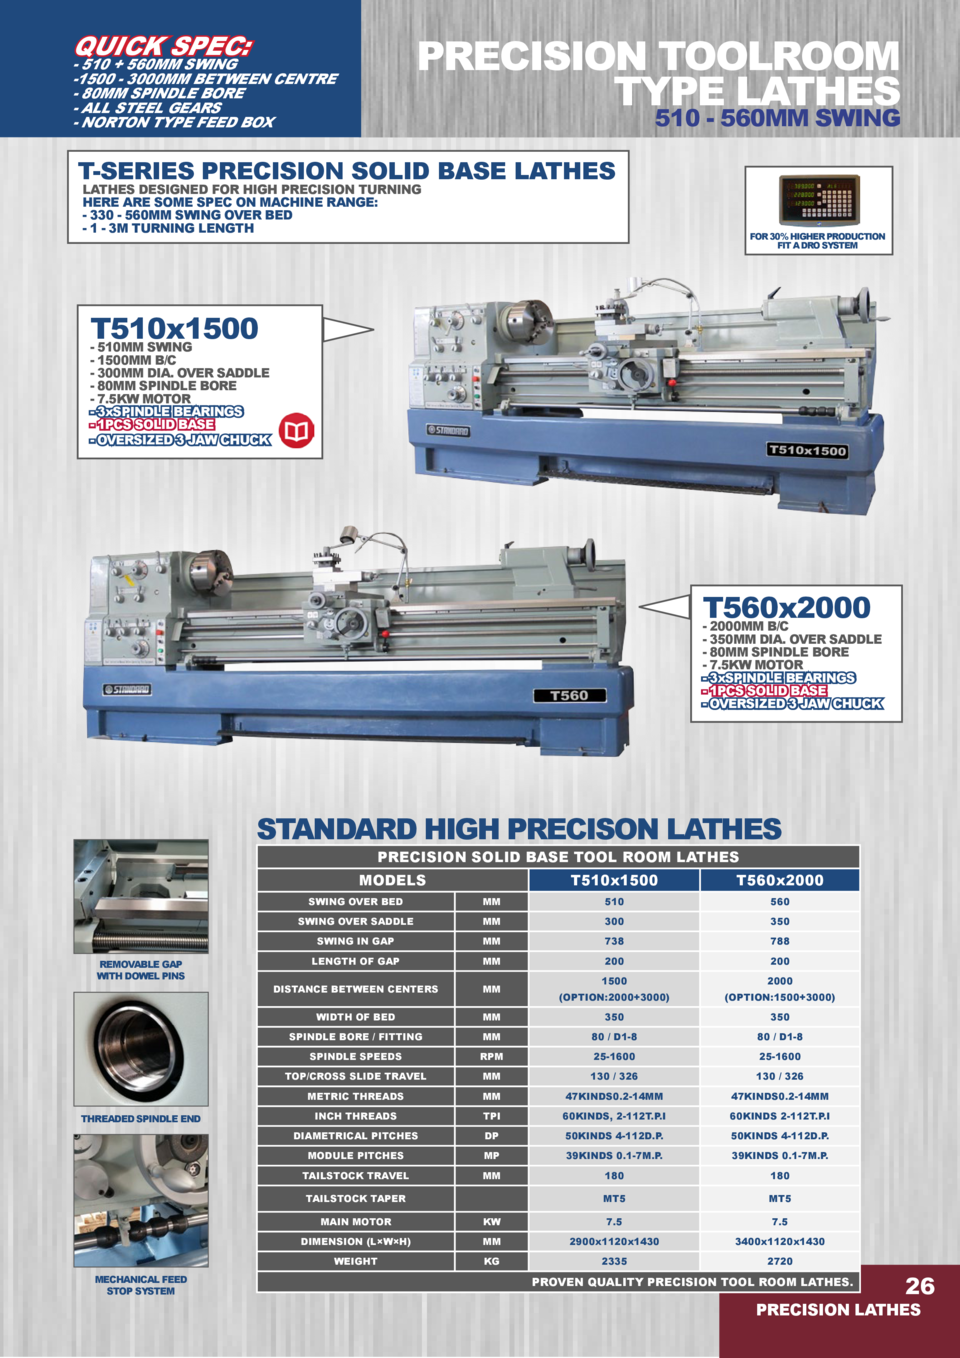 QUICK SPEC   PRECISION TOOLROOM TYPE LATHES  - 510   560MM SWING -1500 - 3000MM BETWEEN CENTRE - 80MM SPINDLE BORE - ALL S...